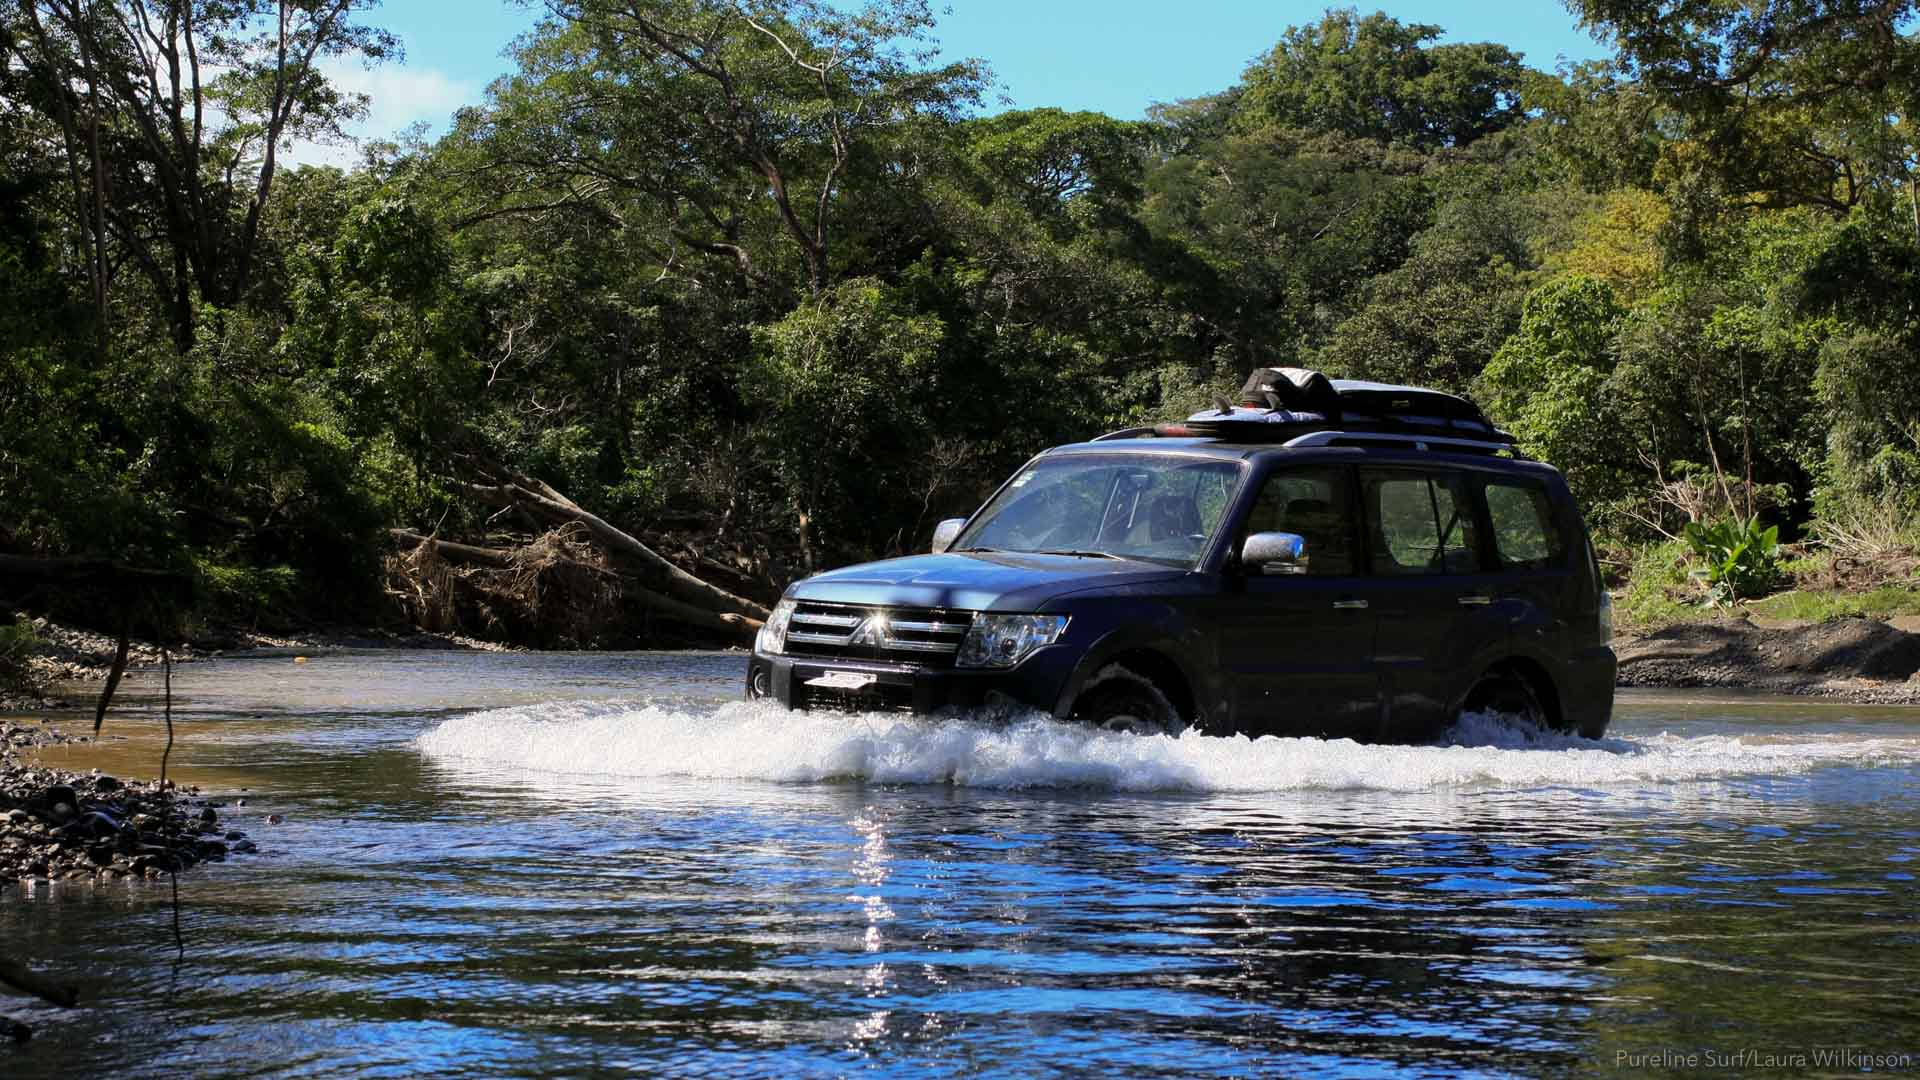 4x4 truck with surfboards on the roof, driving through a river in Costa Rica on the way to the best surf with Pureline.